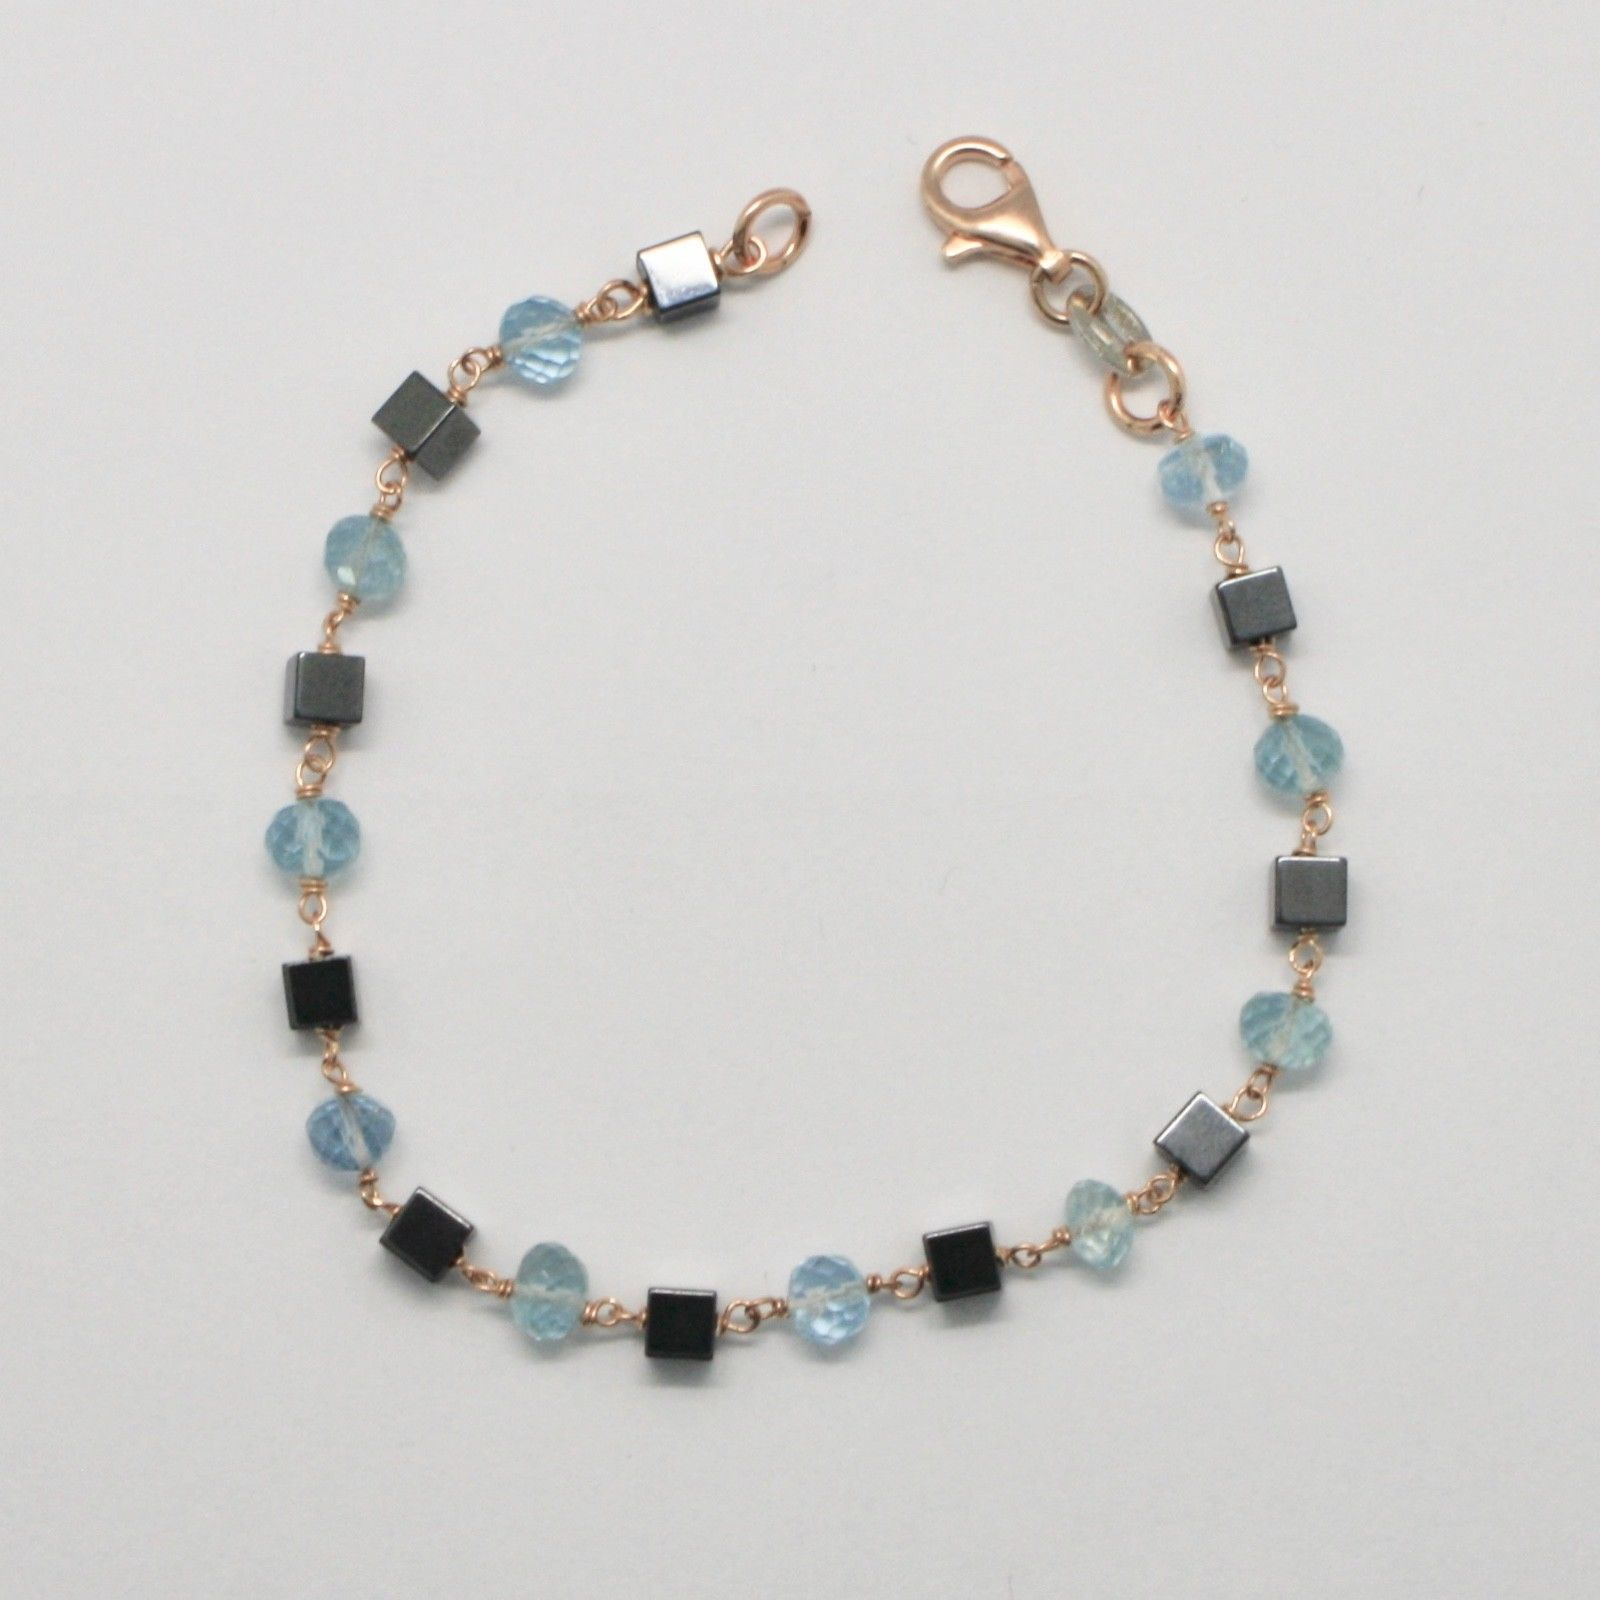 SILVER 925 BRACELET WITH AQUAMARINE FACETED HEMATITE MADE IN ITALY